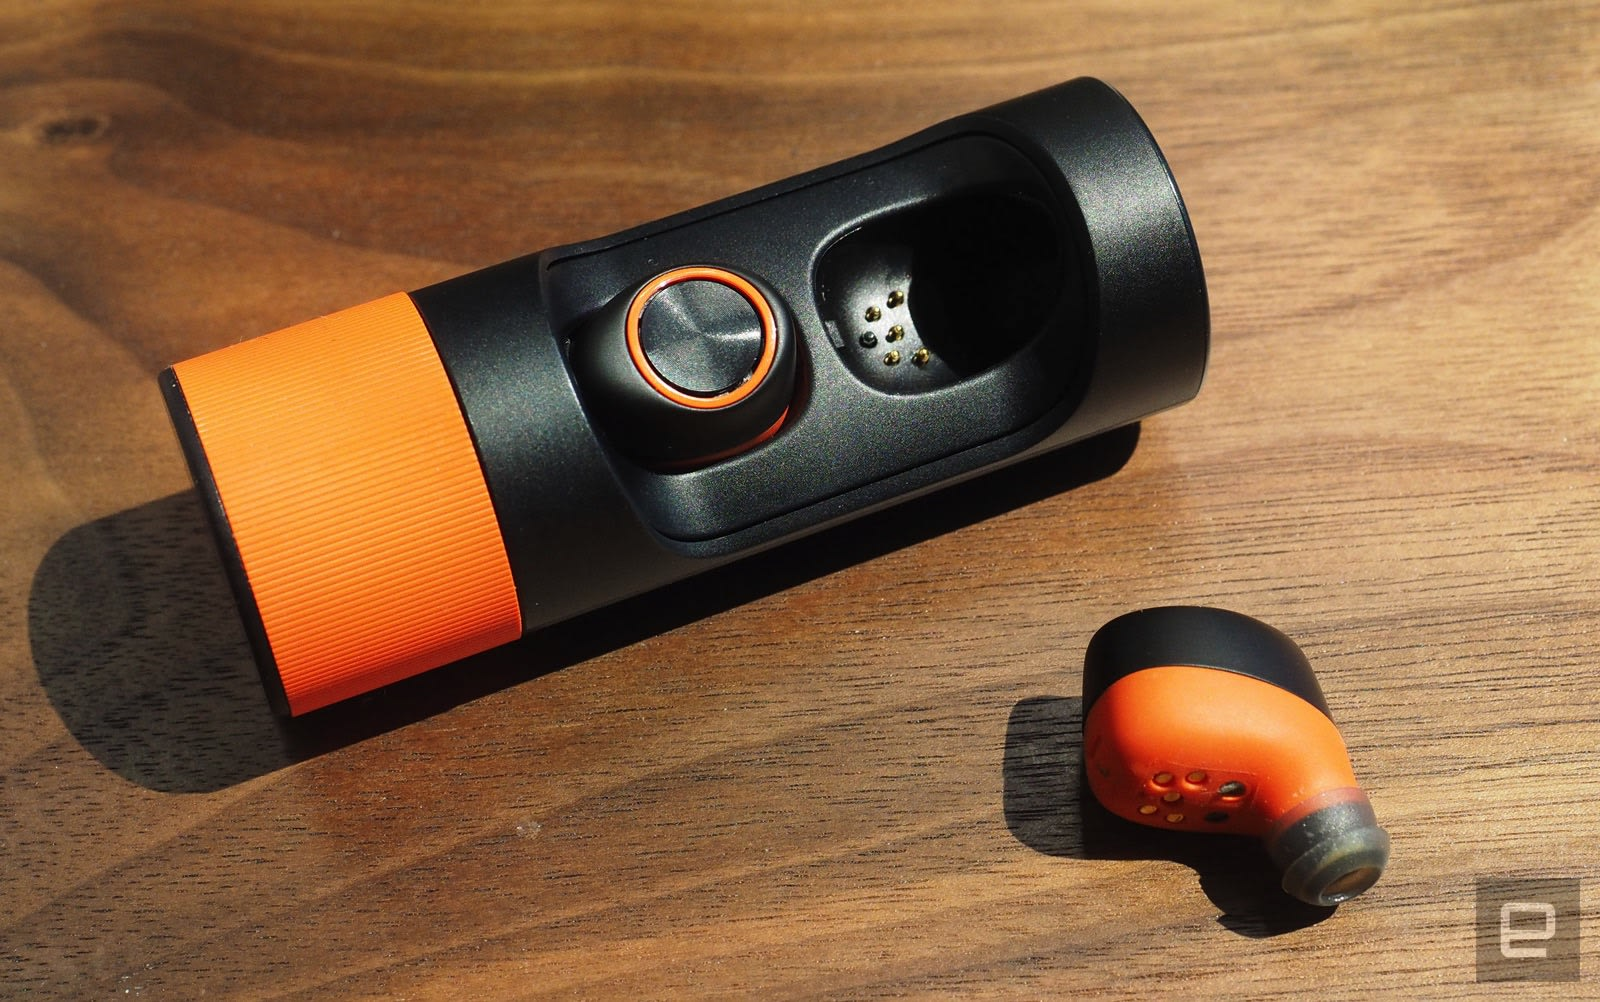 Motorola S Latest Wireless Earbuds Don T Live Up To